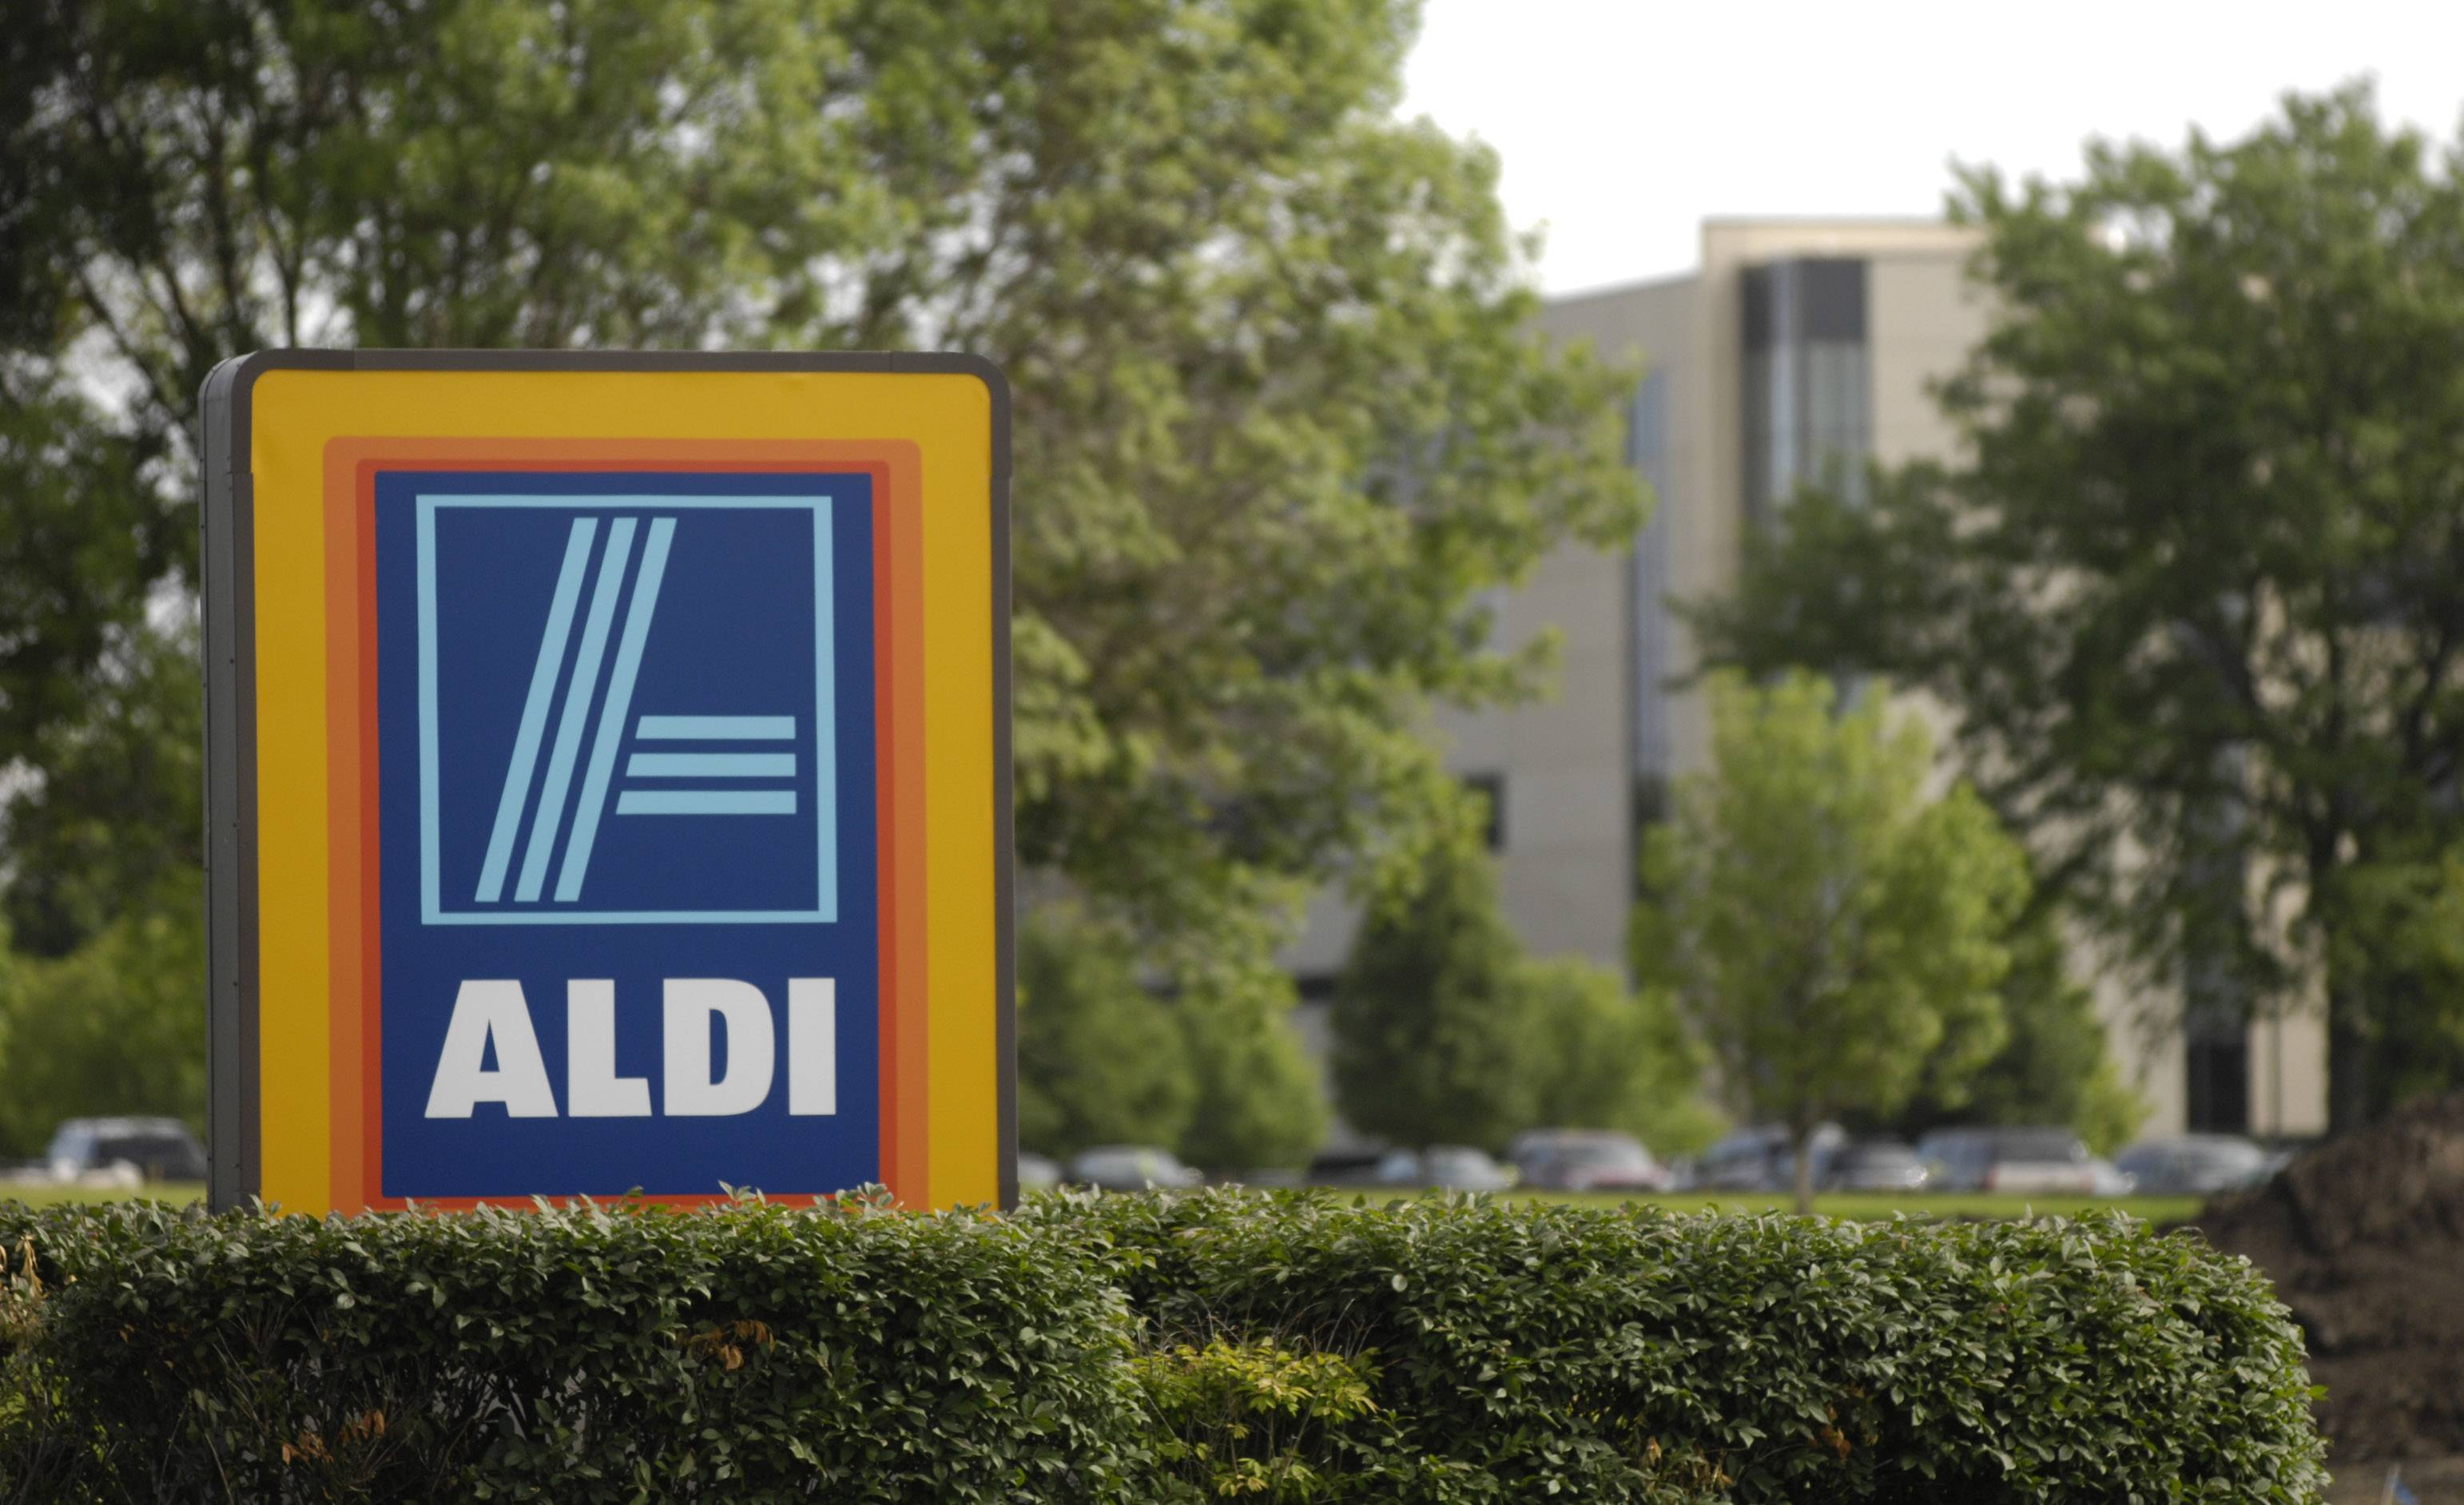 Aldi, headquartered in Batavia, is opening its newest renovated store this week in West Chicago.